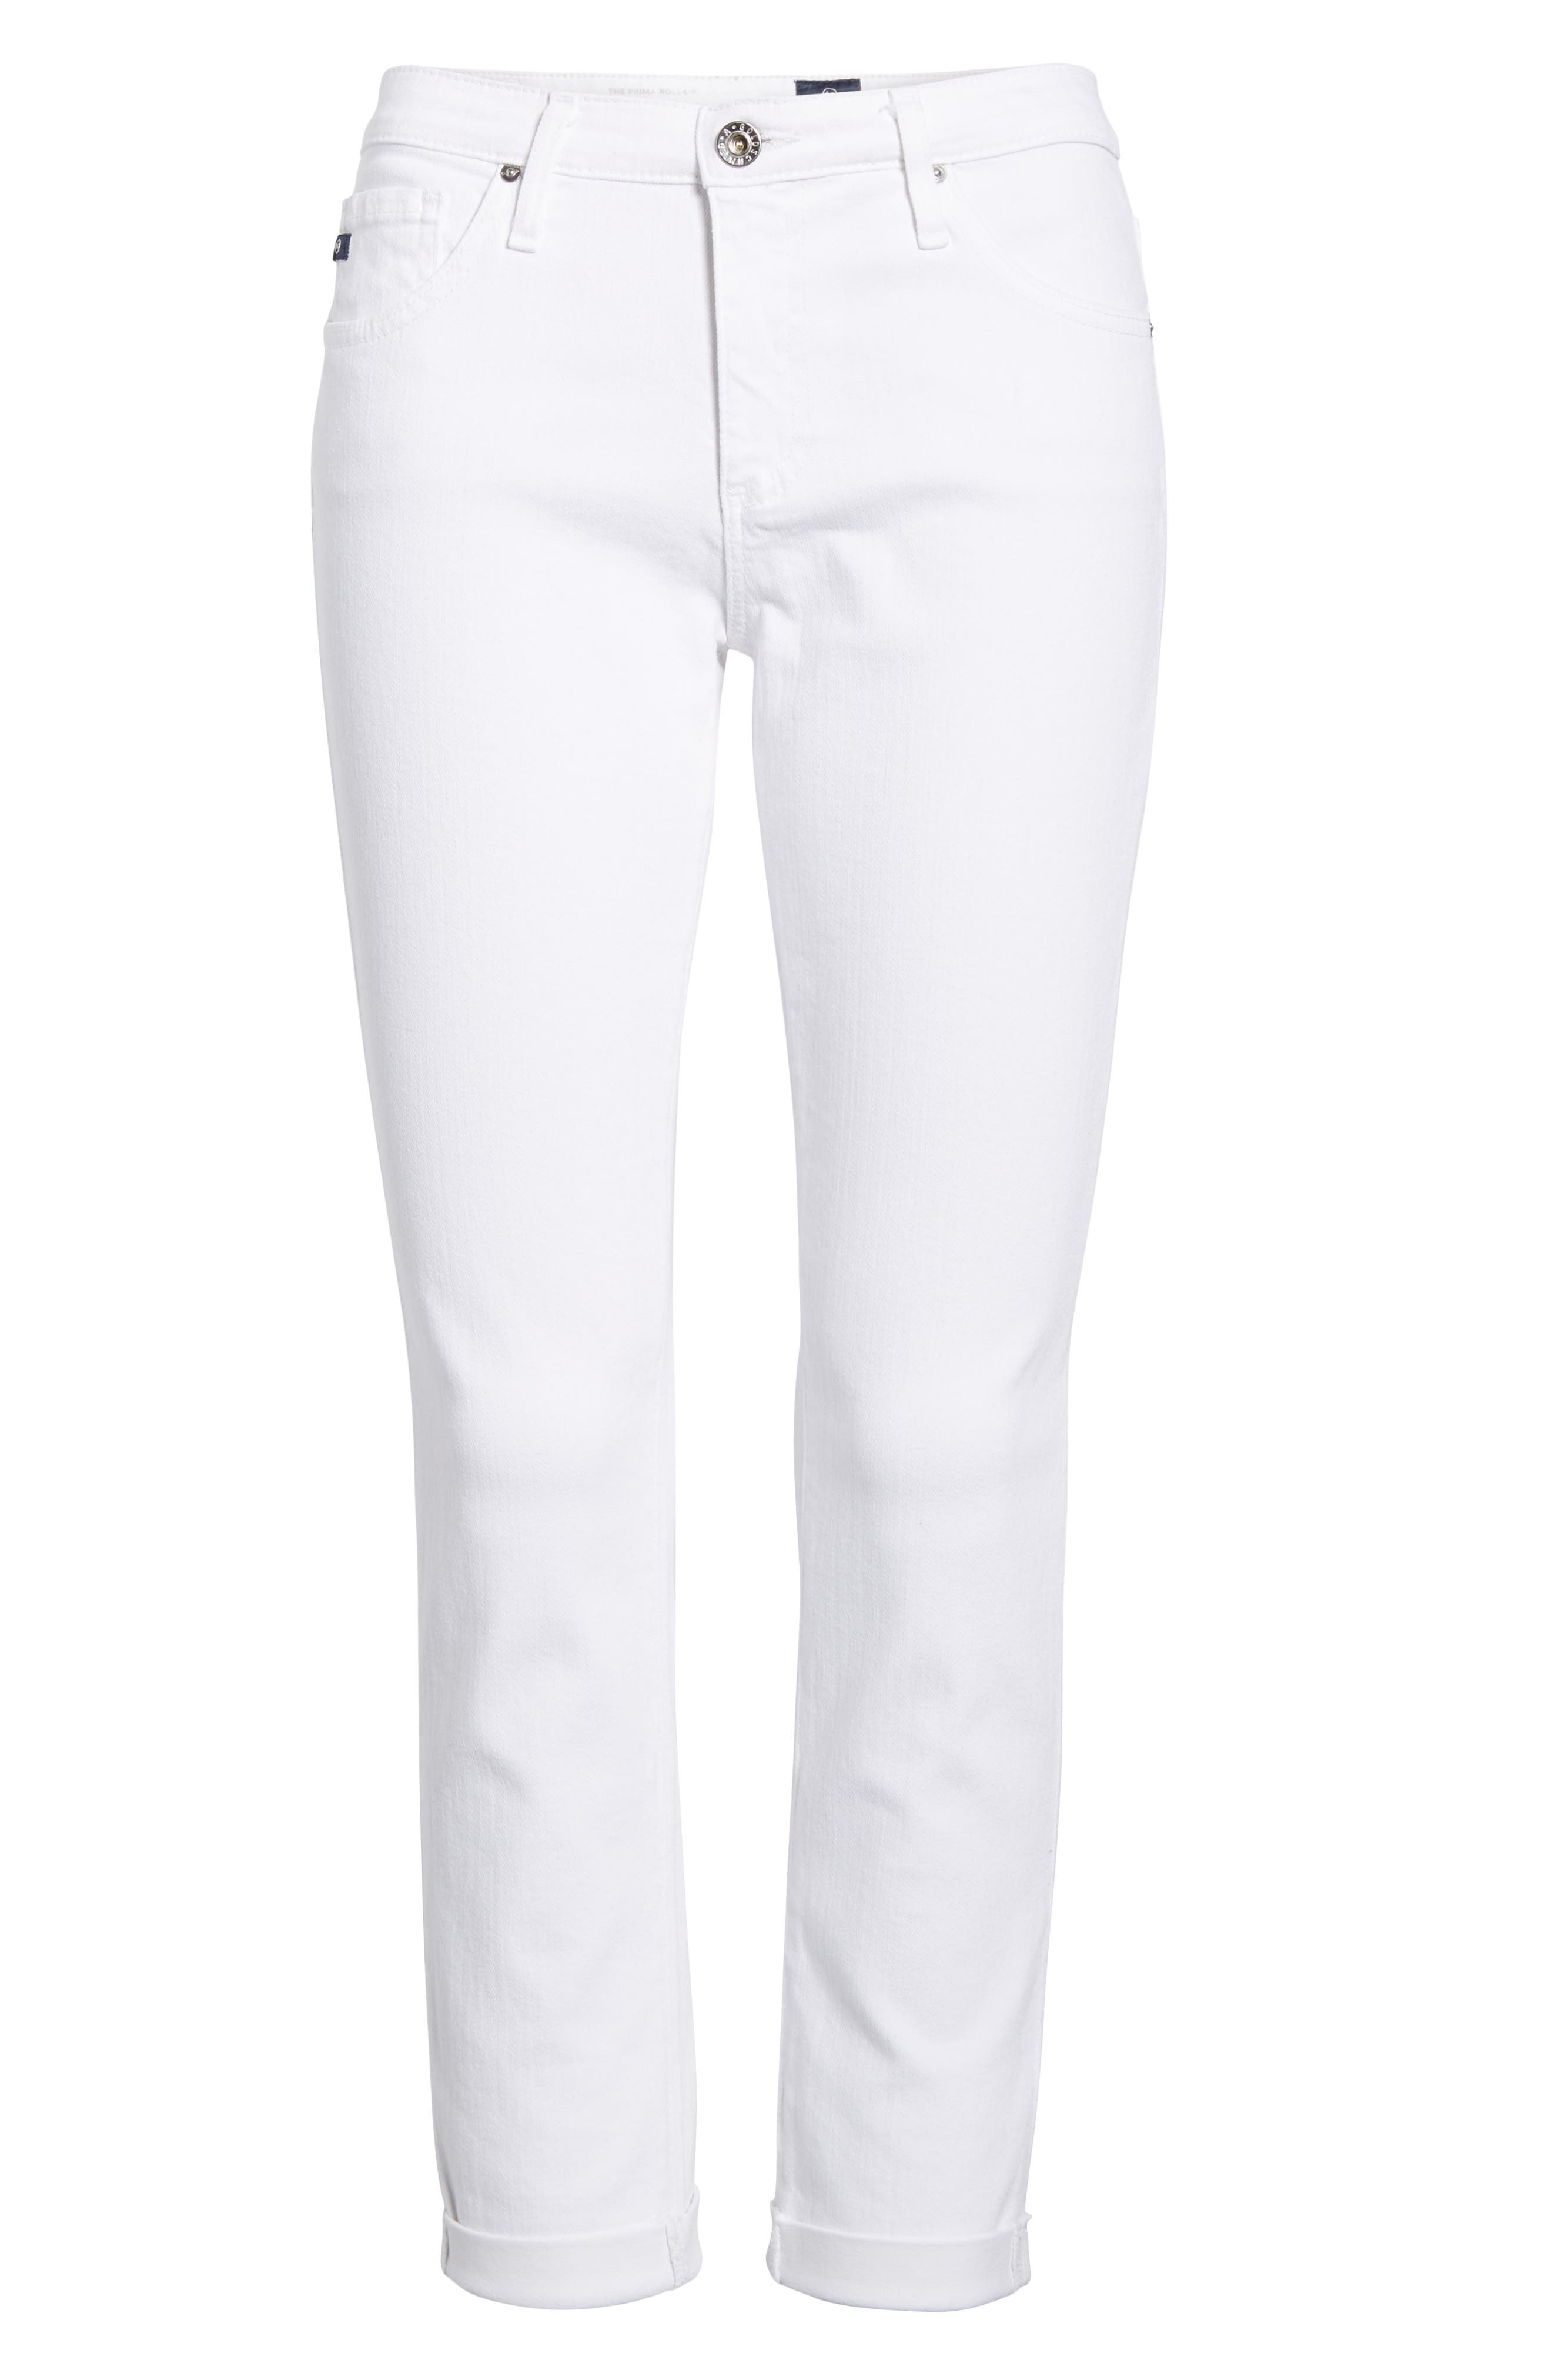 Prima Roll-Up Skinny Jeans,                             Alternate thumbnail 7, color,                             110